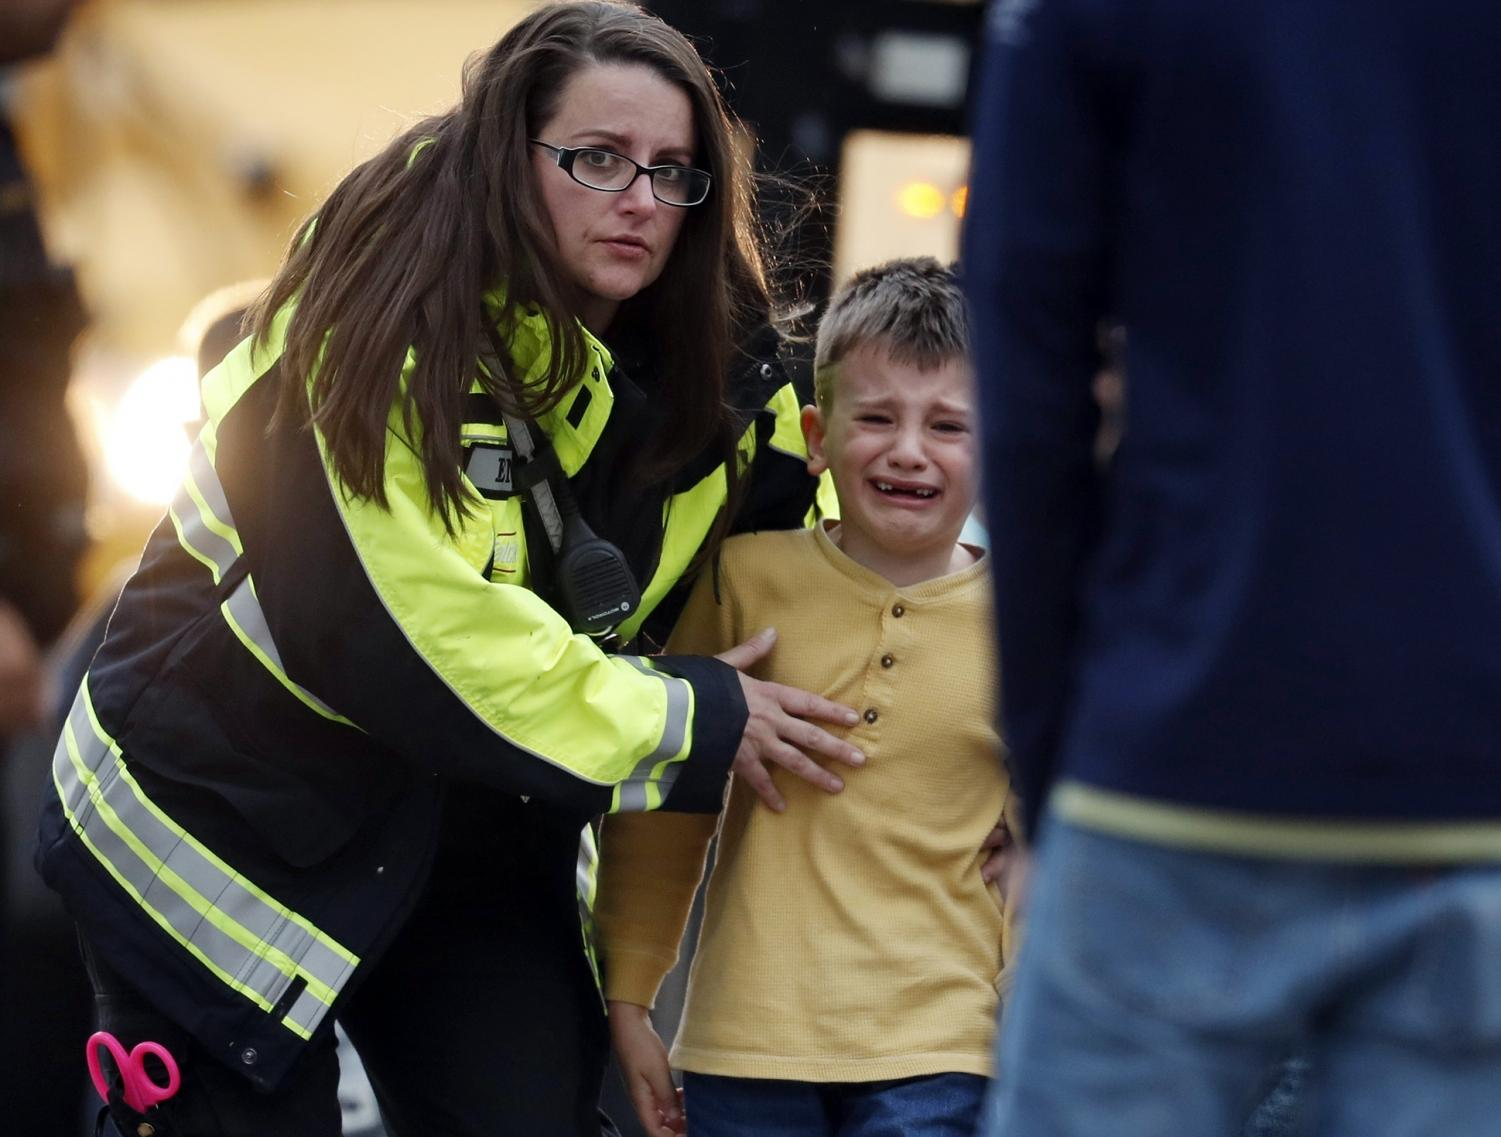 Officials guide students off a bus and into a recreation center where they were reunited with their parents after a shooting at a suburban Denver middle school Tuesday, May 7, 2019, in Highlands Ranch, Colo.